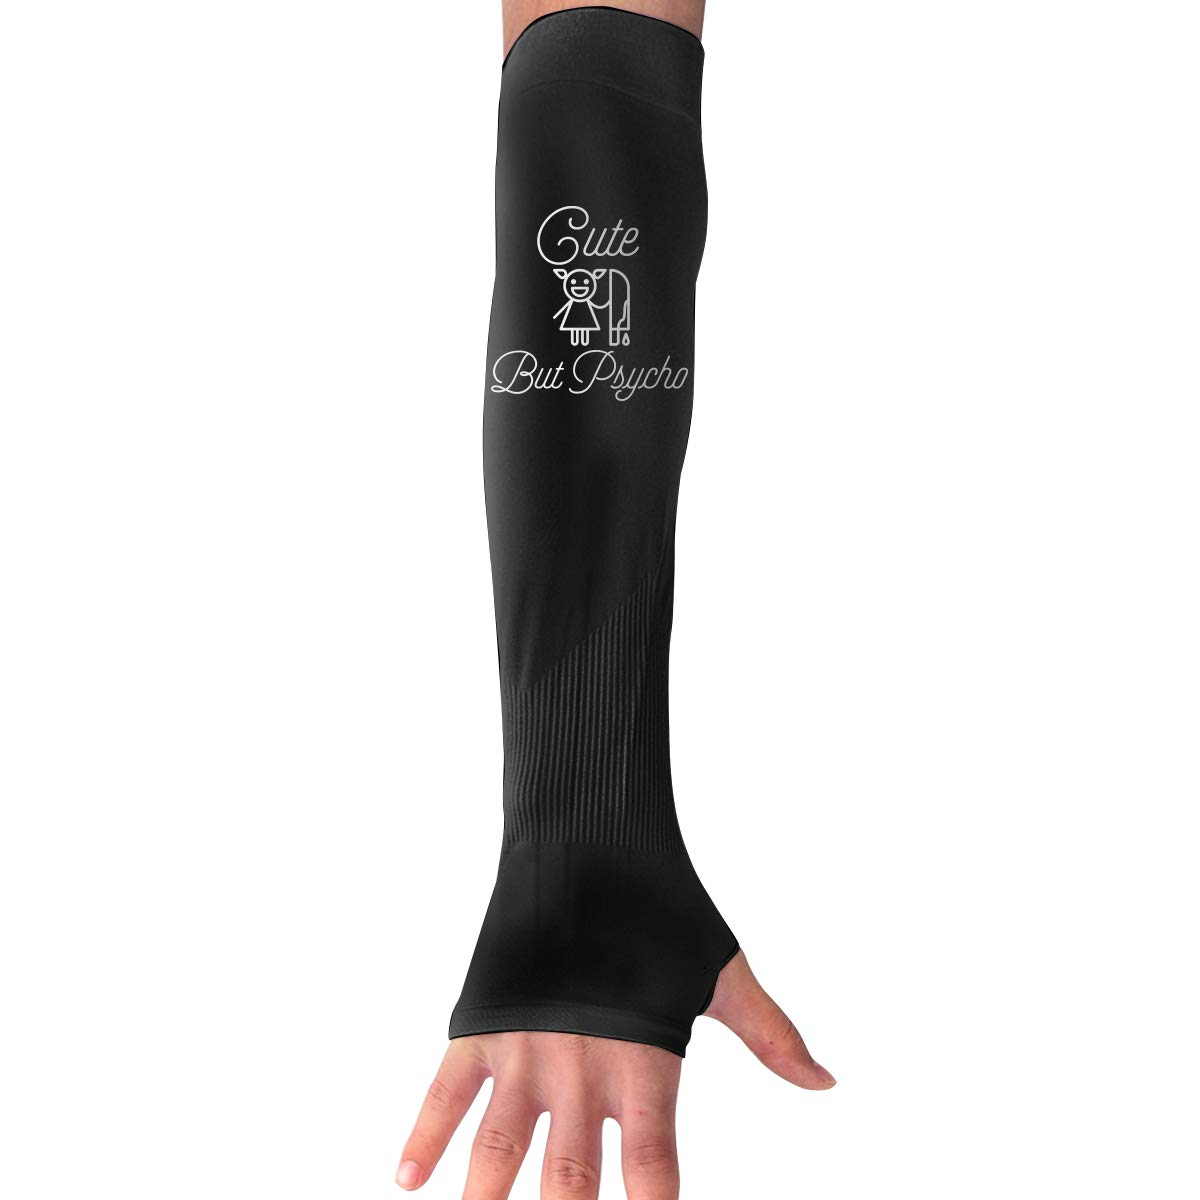 WAY.MAY Cute But Psycho Protection Cooling Warmer Long Arm Sleeves Sunblock Protective Fingerless Gloves Outdoor Sun Sleeve